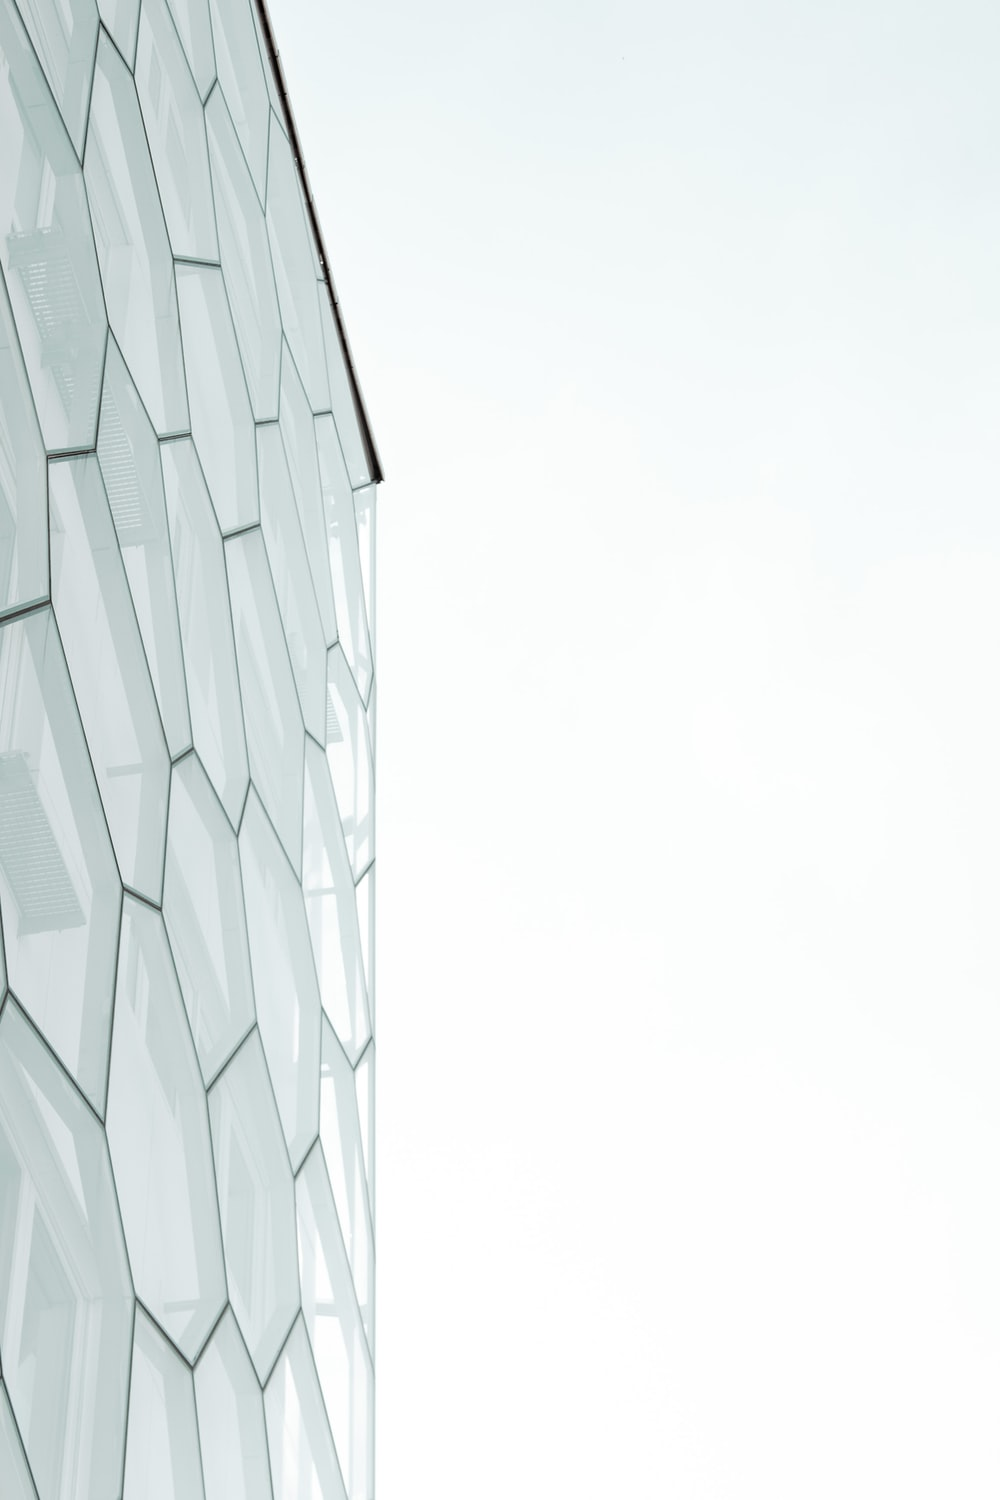 gray and white glass building